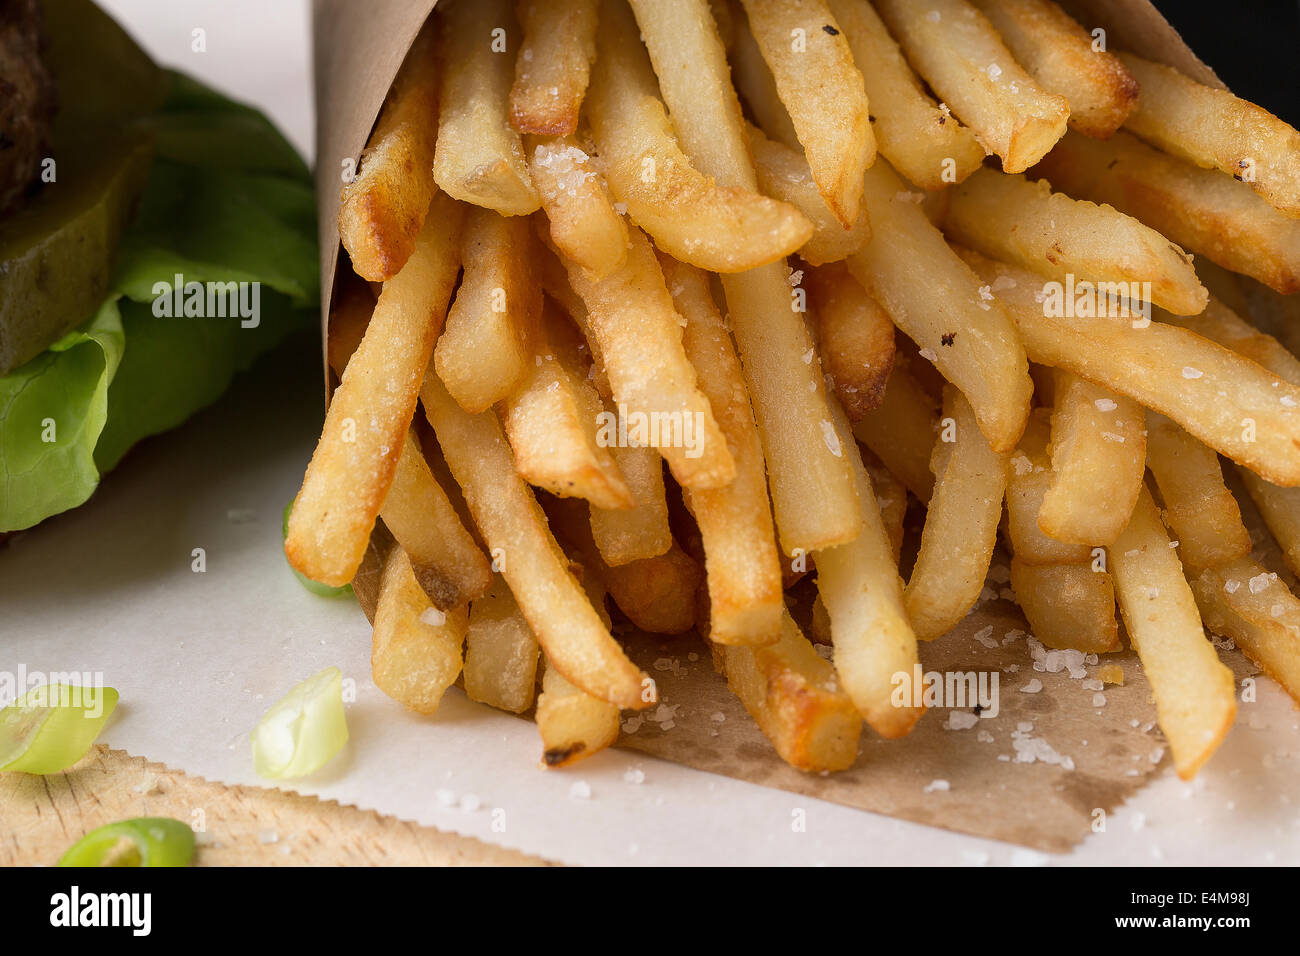 French Fries close up with pickle & lettuce detail from burger. - Stock Image